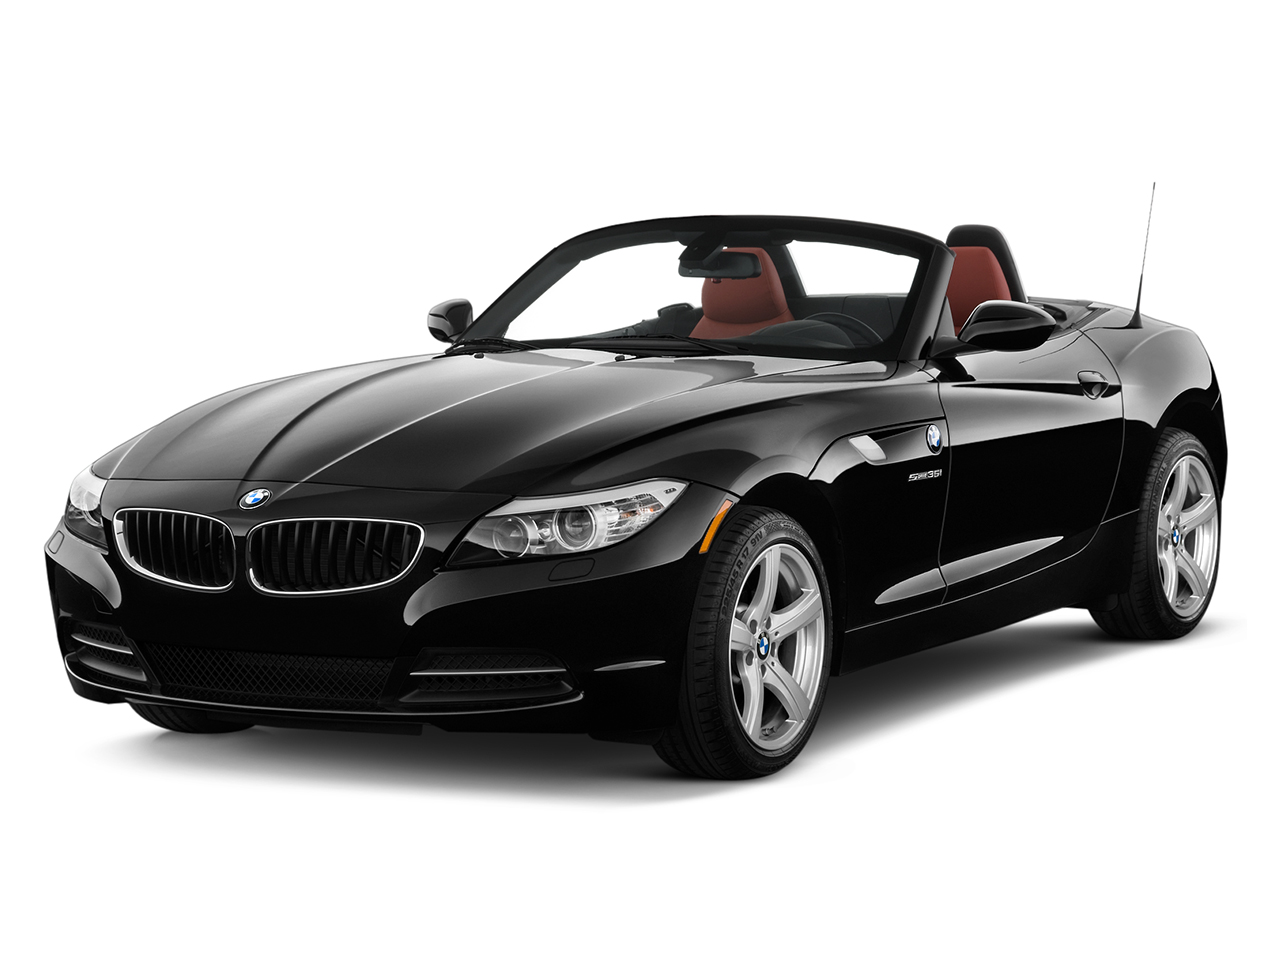 2017 bmw z4 roadster prices in saudi arabia gulf specs reviews for riyadh jeddah dammam and. Black Bedroom Furniture Sets. Home Design Ideas